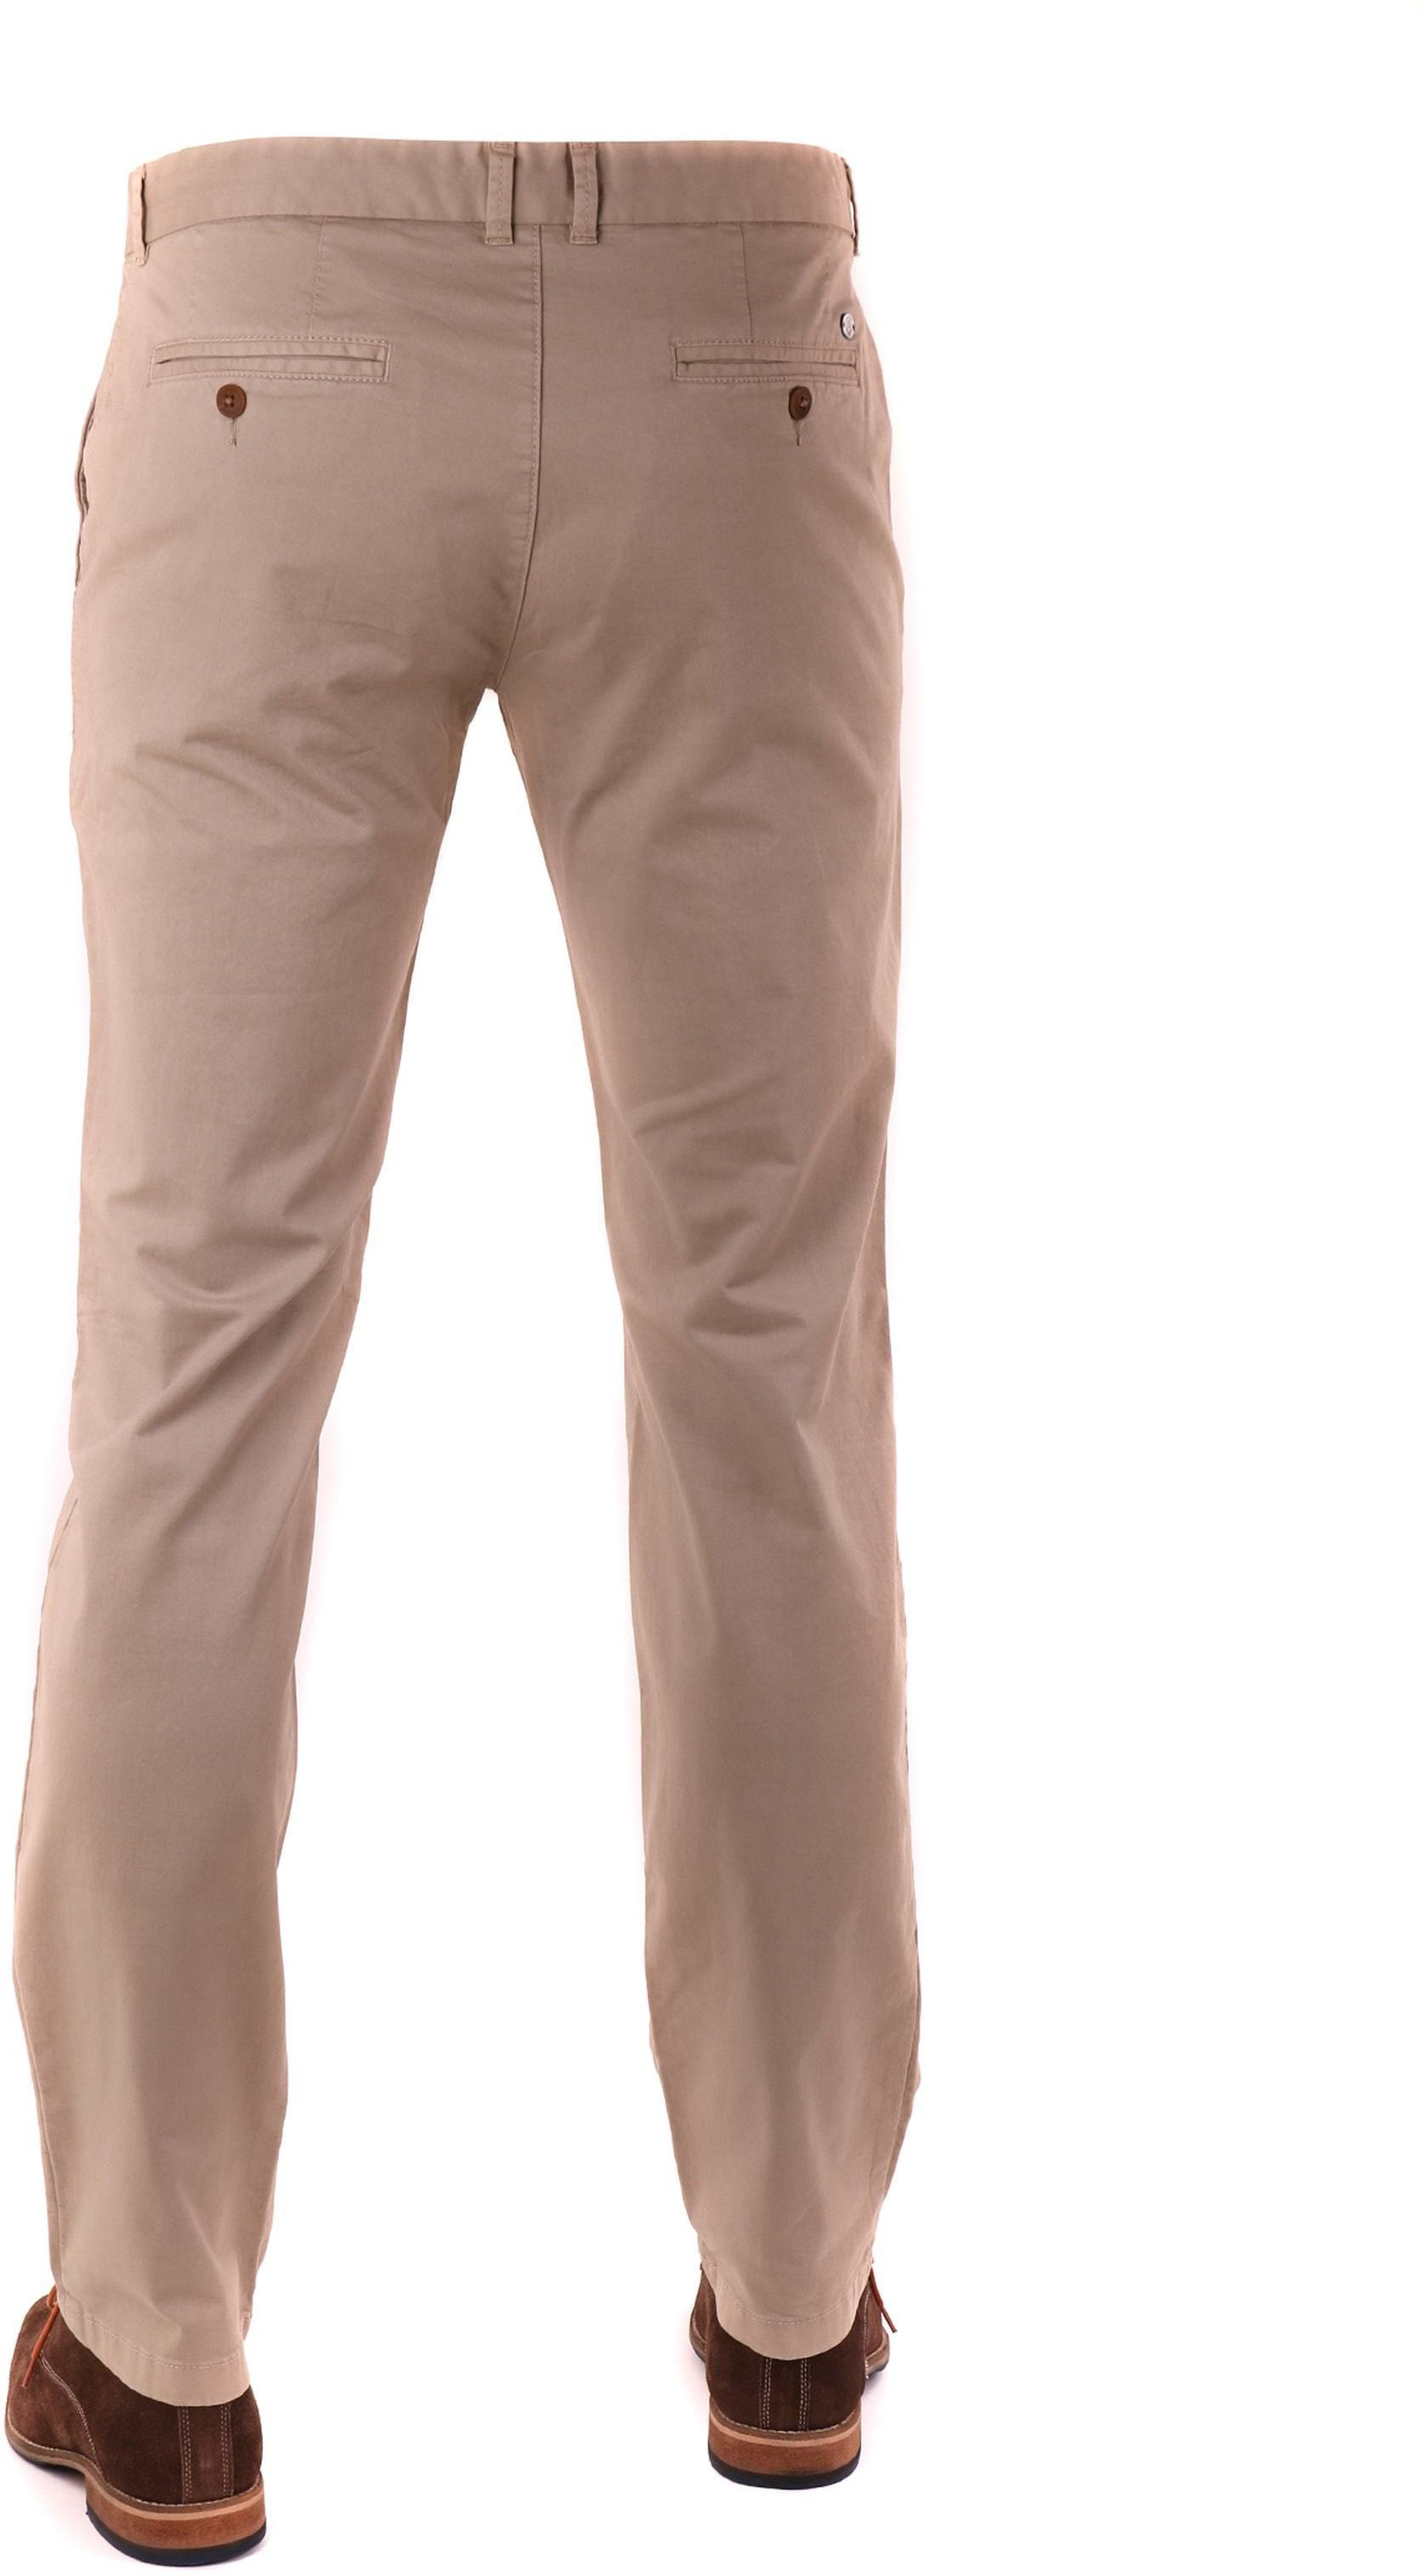 Suitable Chino Broek Khaki foto 1